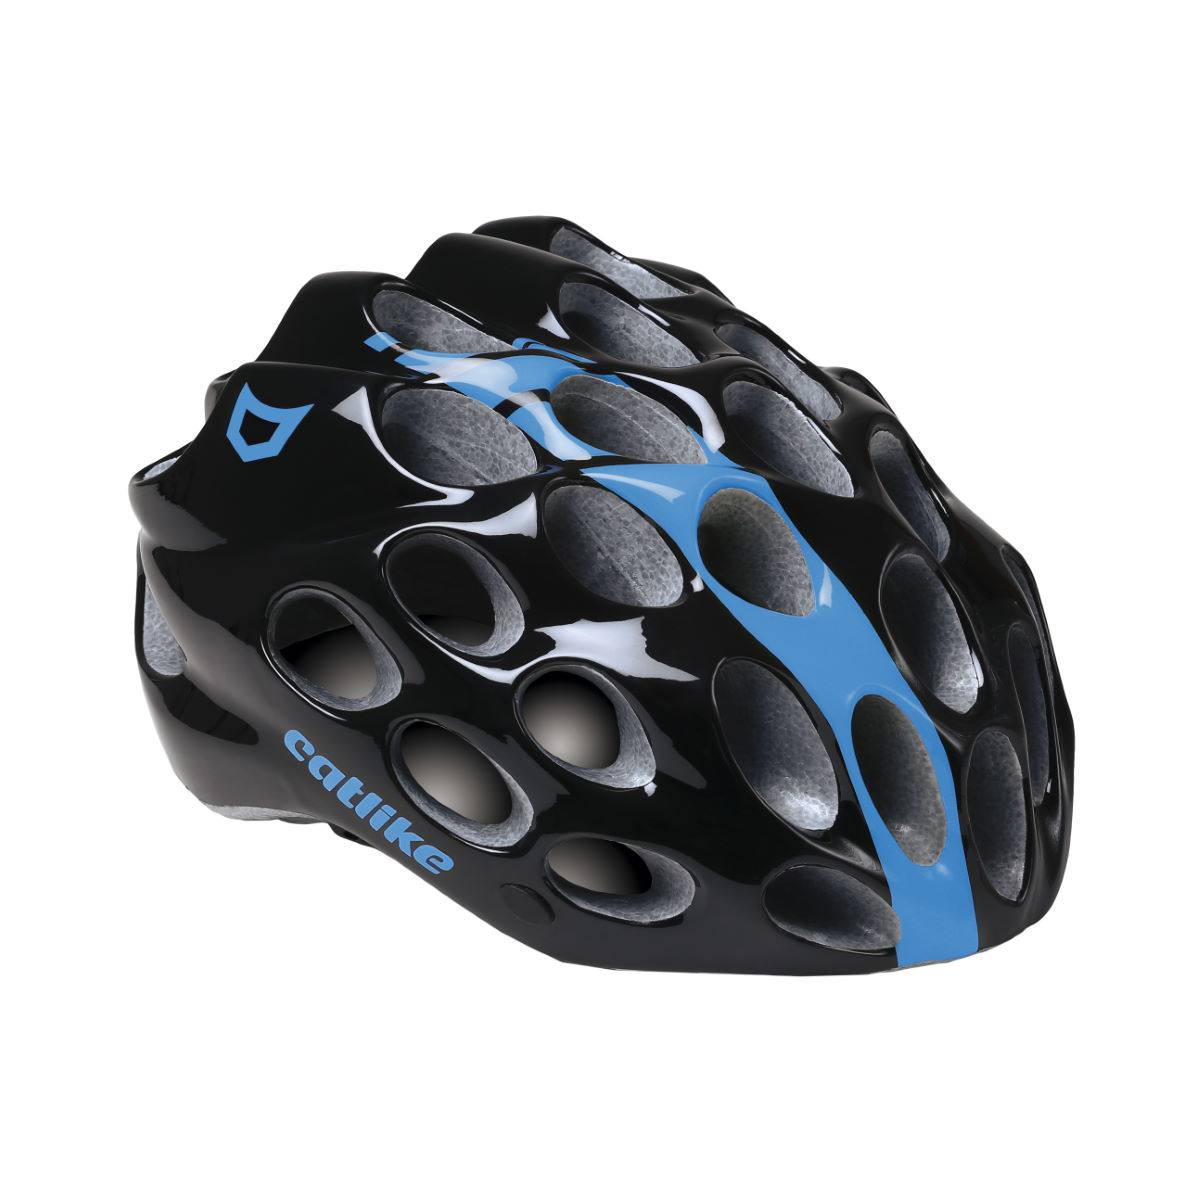 Casque Catlike Whisper - Small Glossy Black/Blue Casques de route